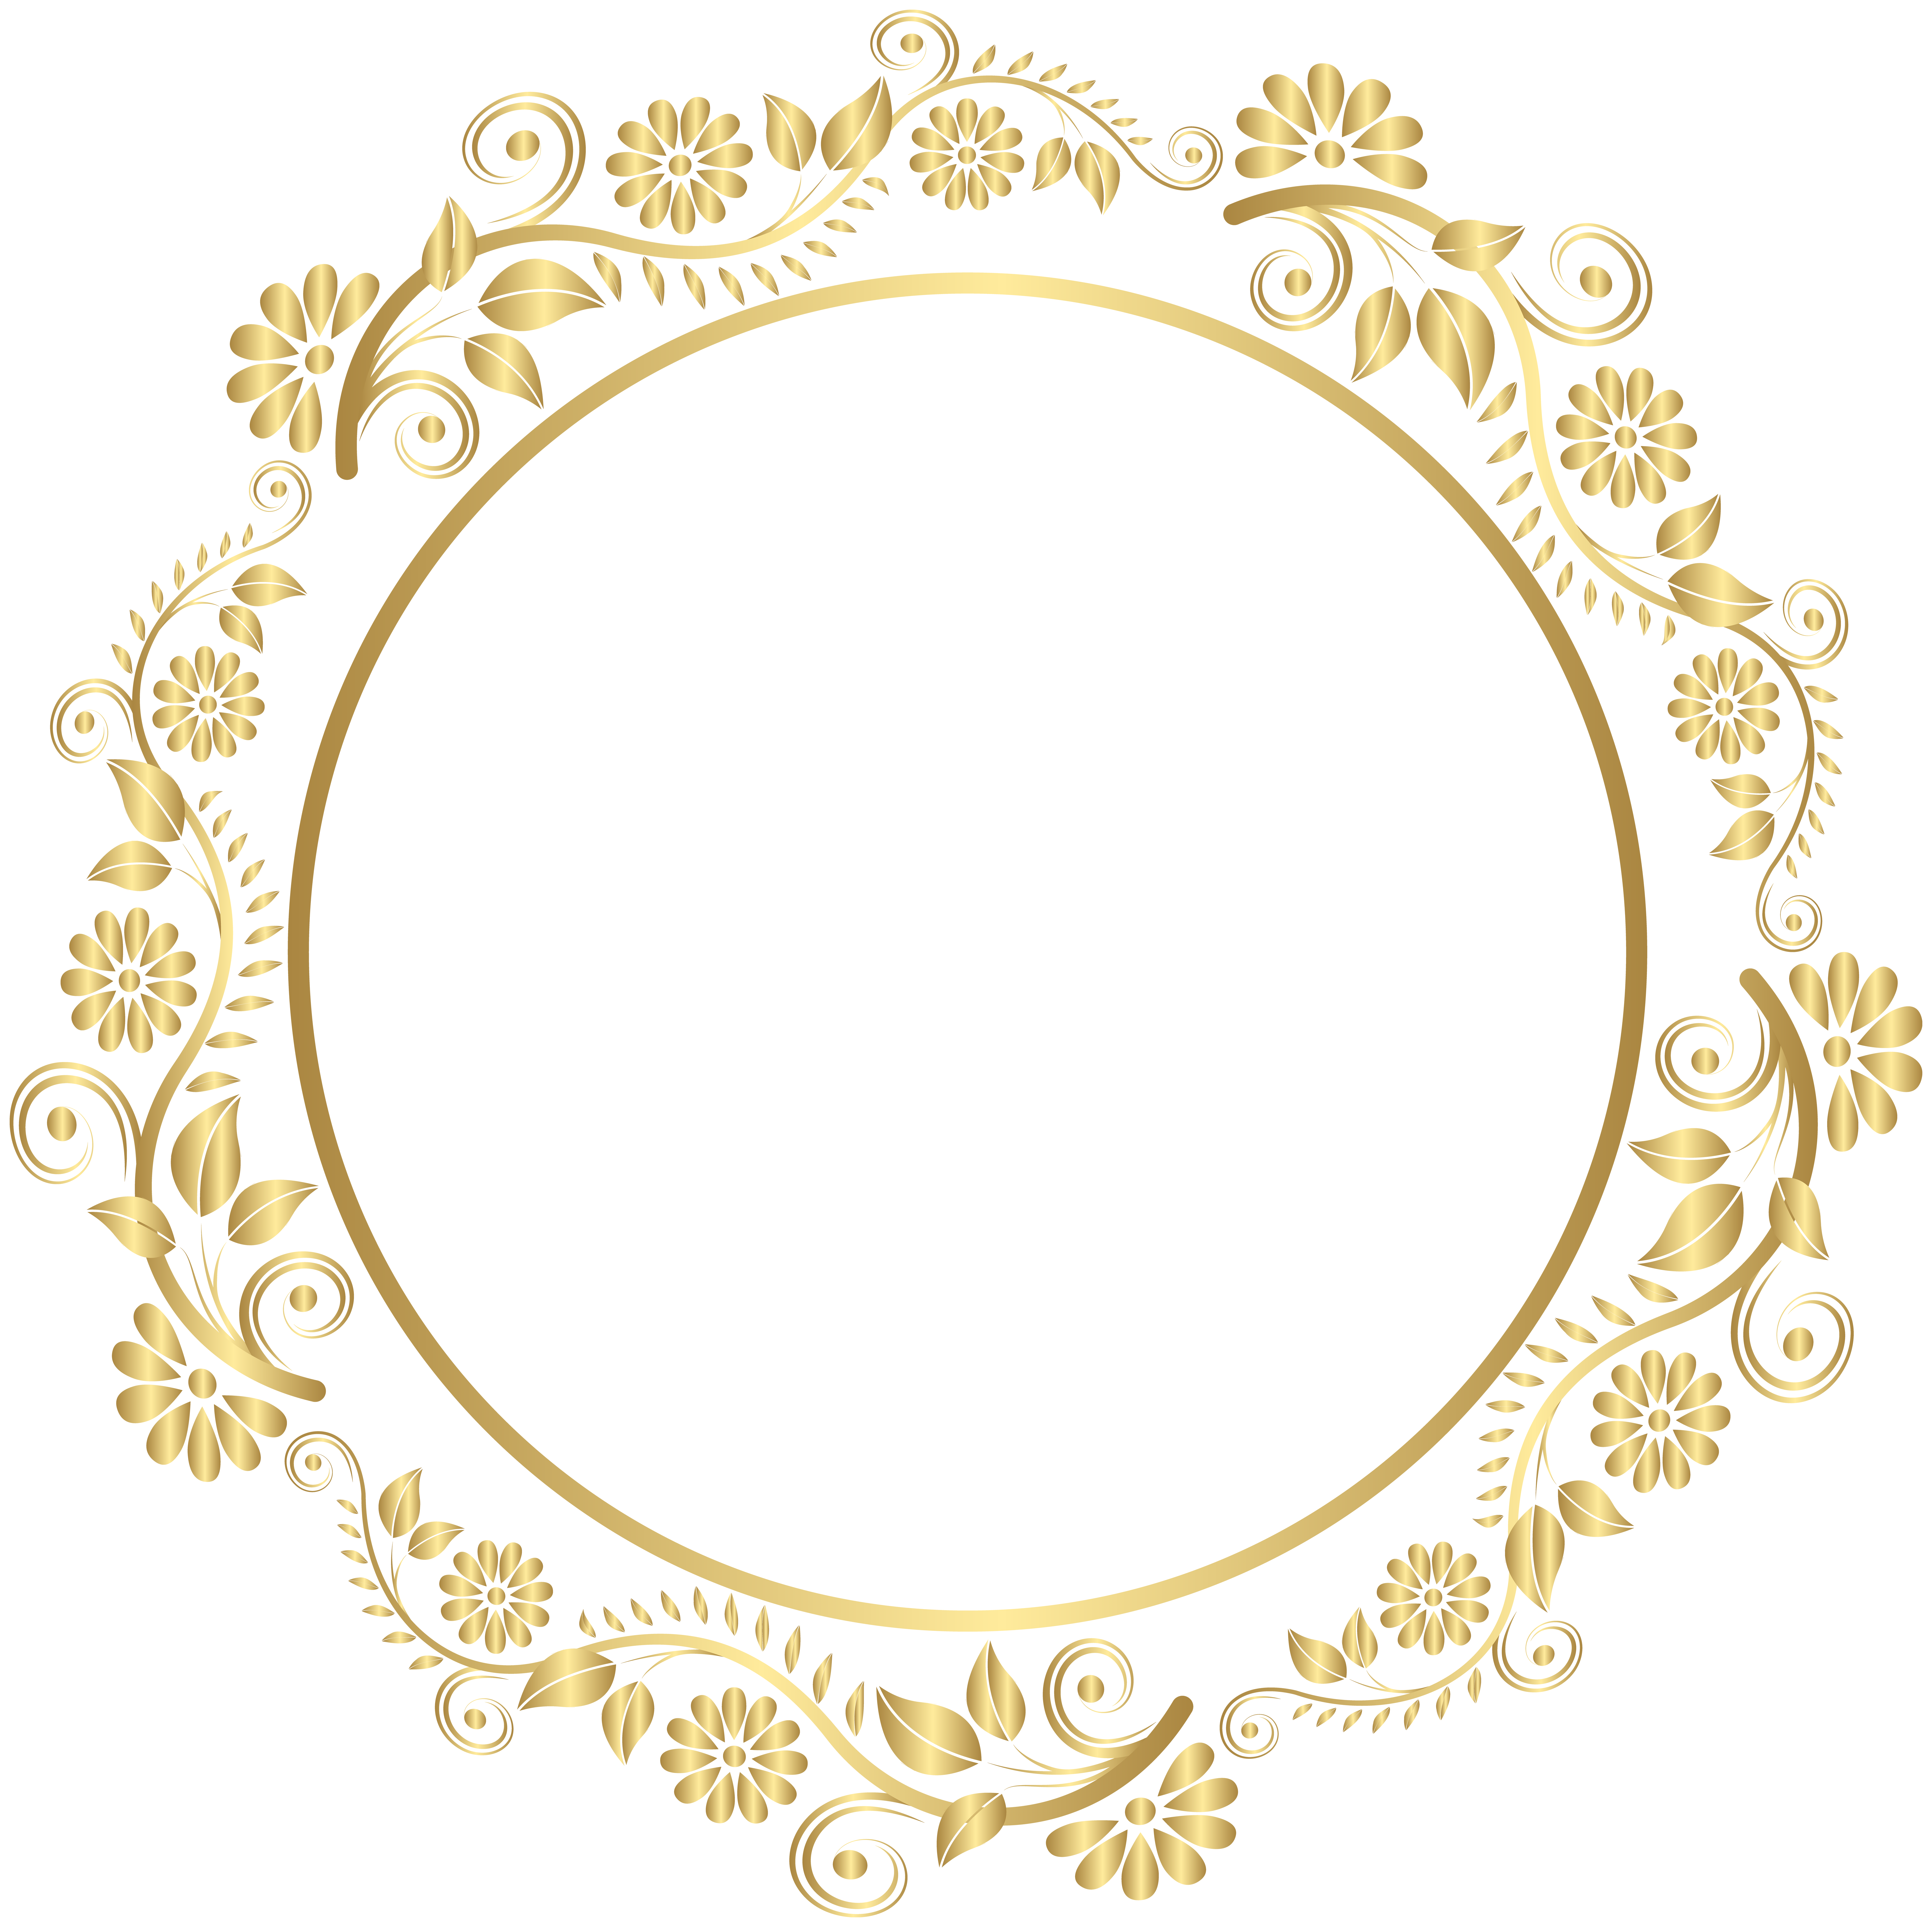 Gold circle frame png. Round border deco clip